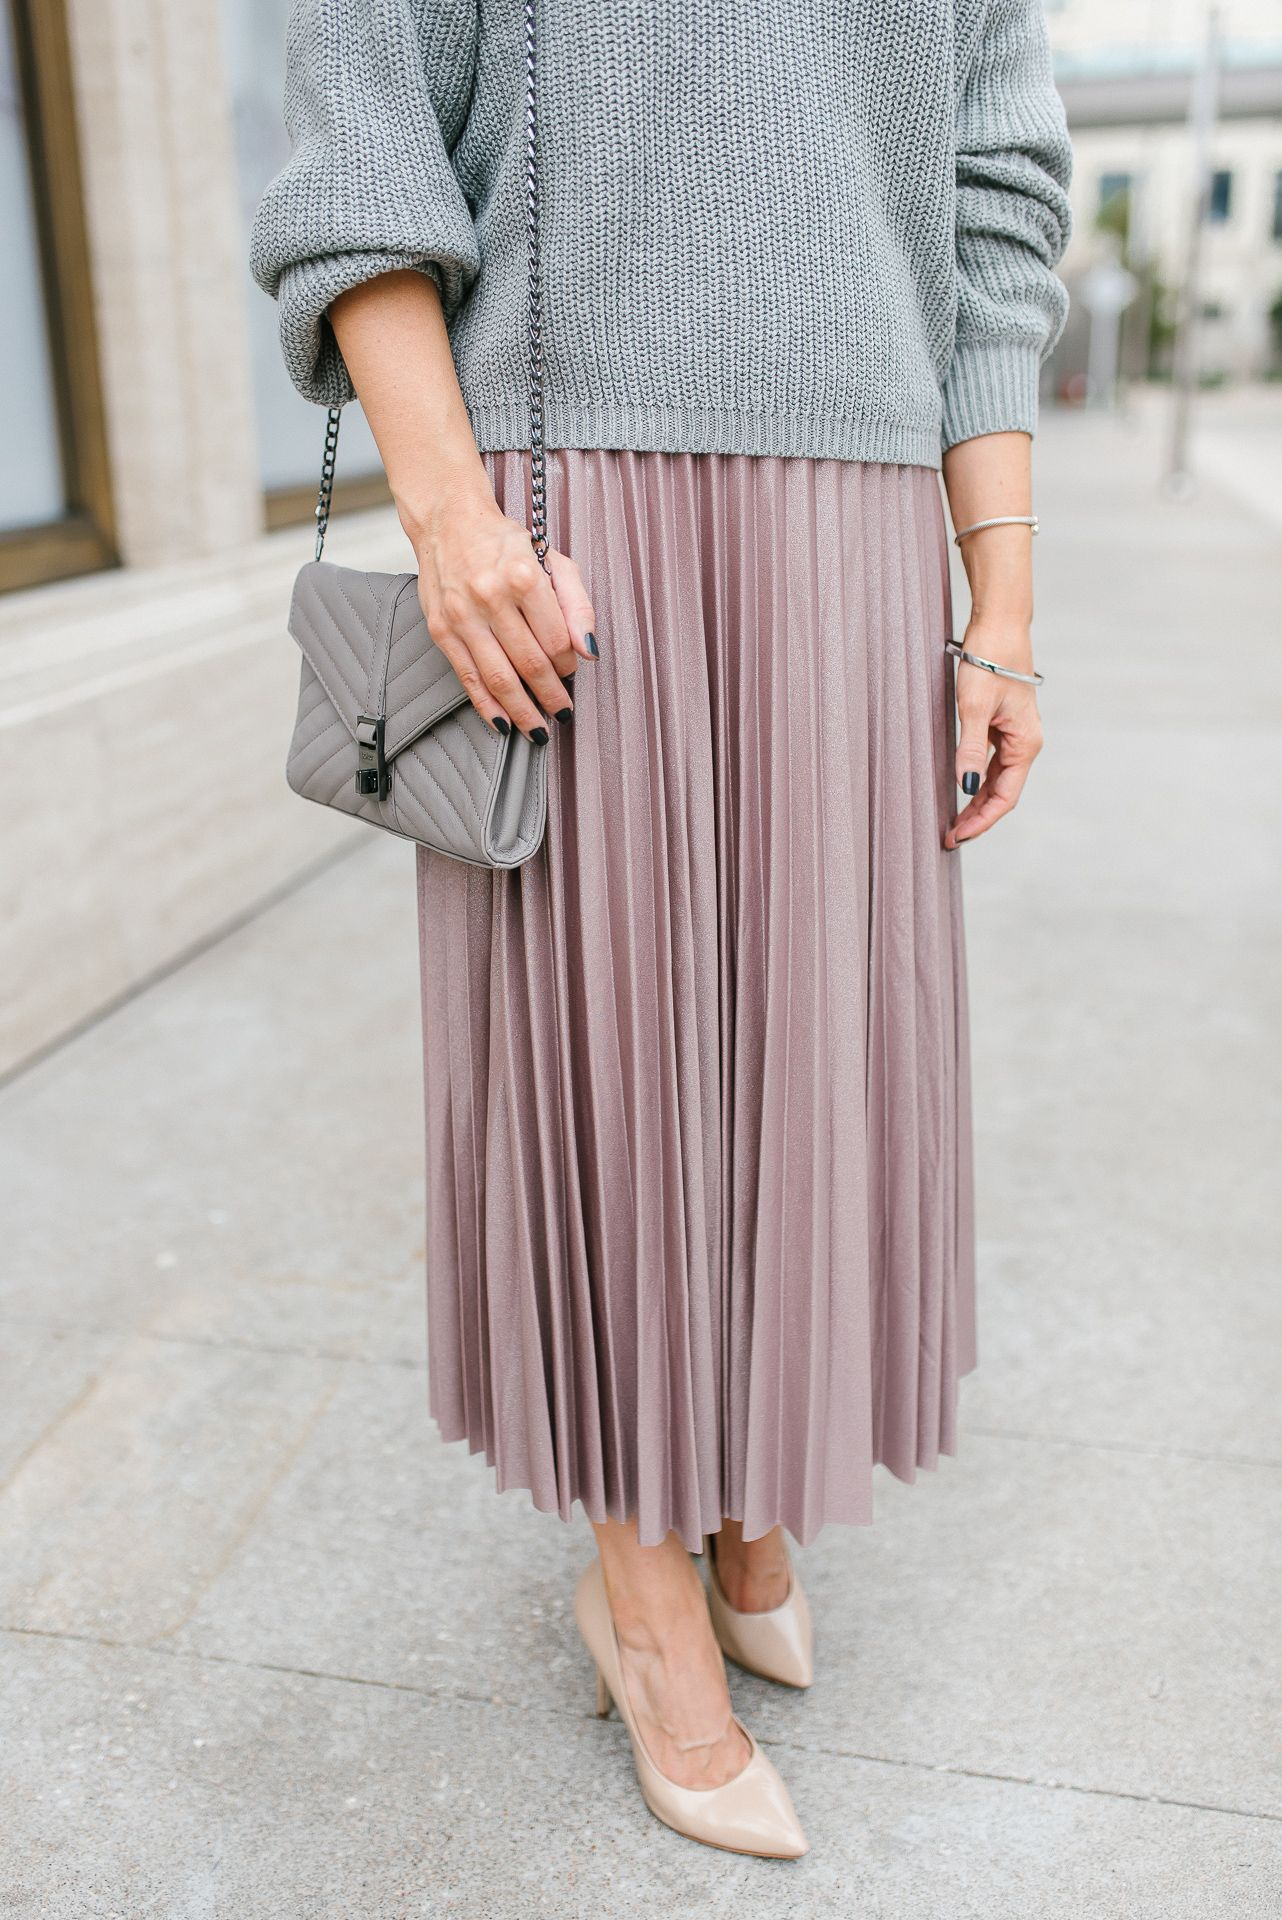 Sweater and Midi Skirt Outfit